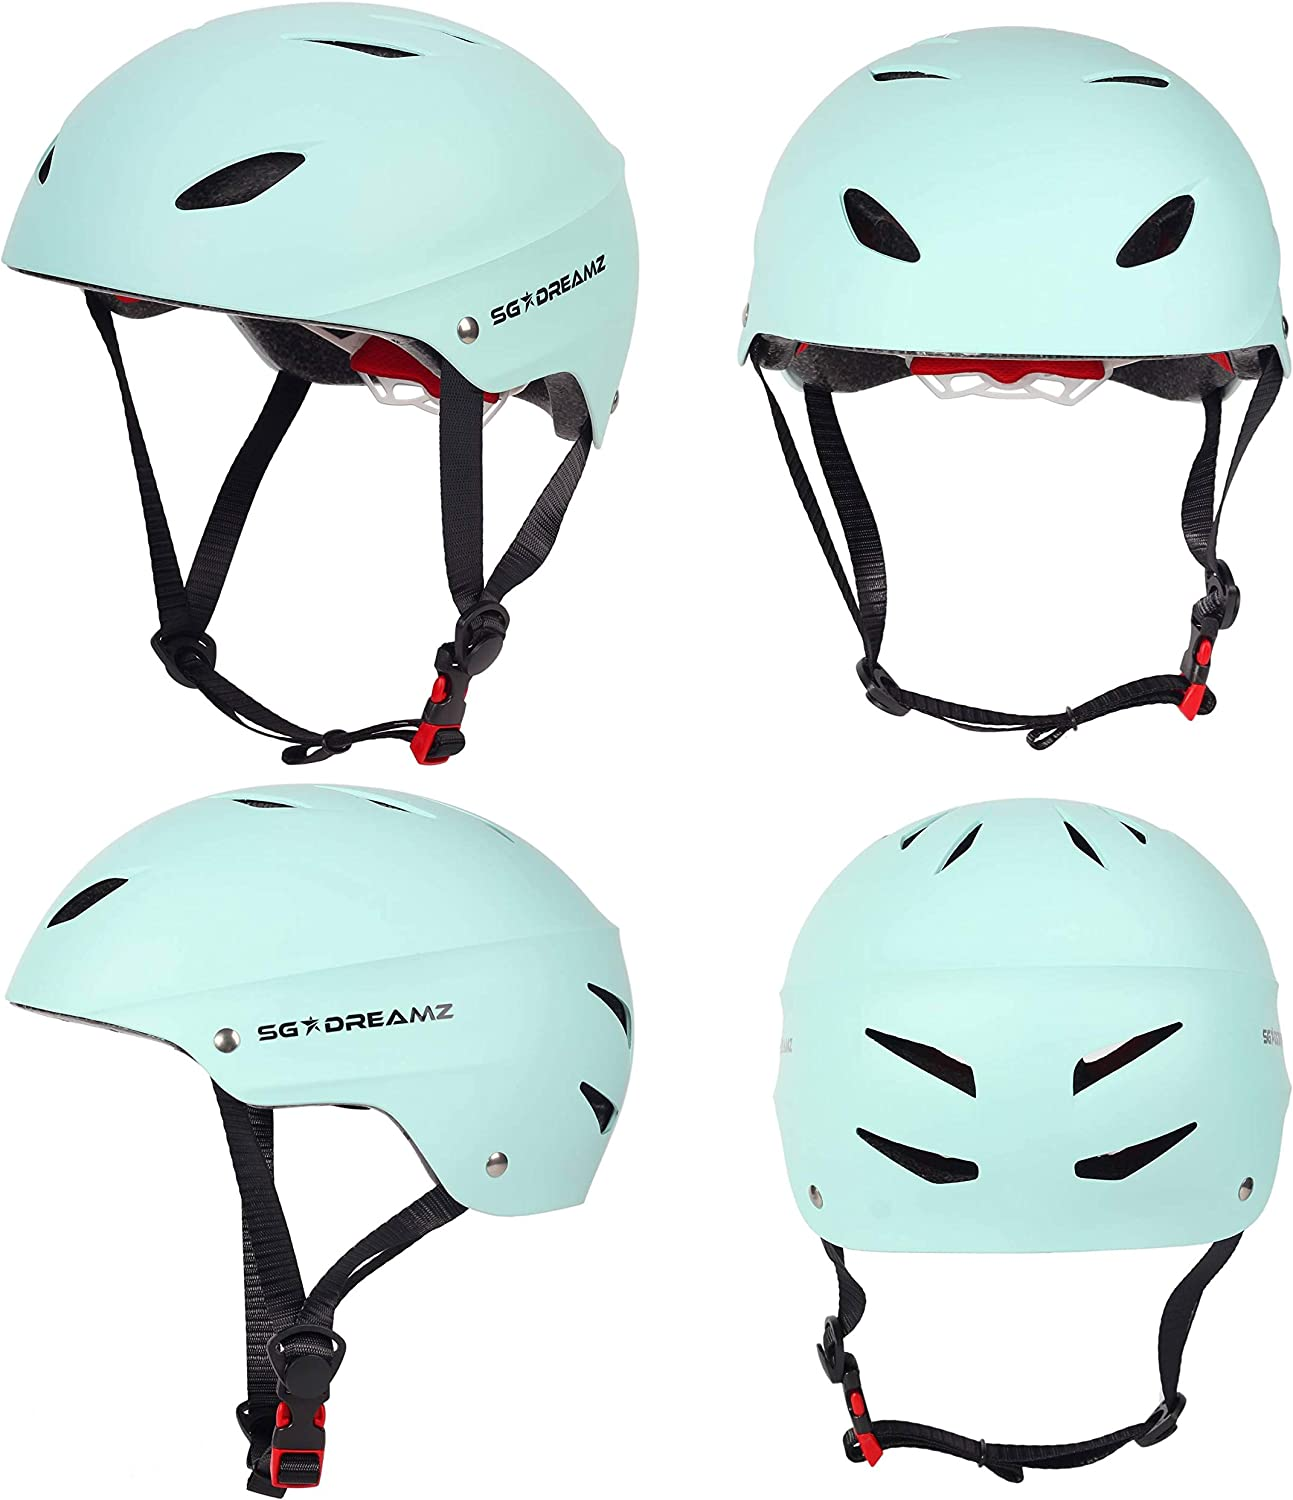 Adult Helmet Adjustable Dial for Head Circumference 21.6 to 24 Head Size Large Commuter Bicycle Helmets for Men and Women